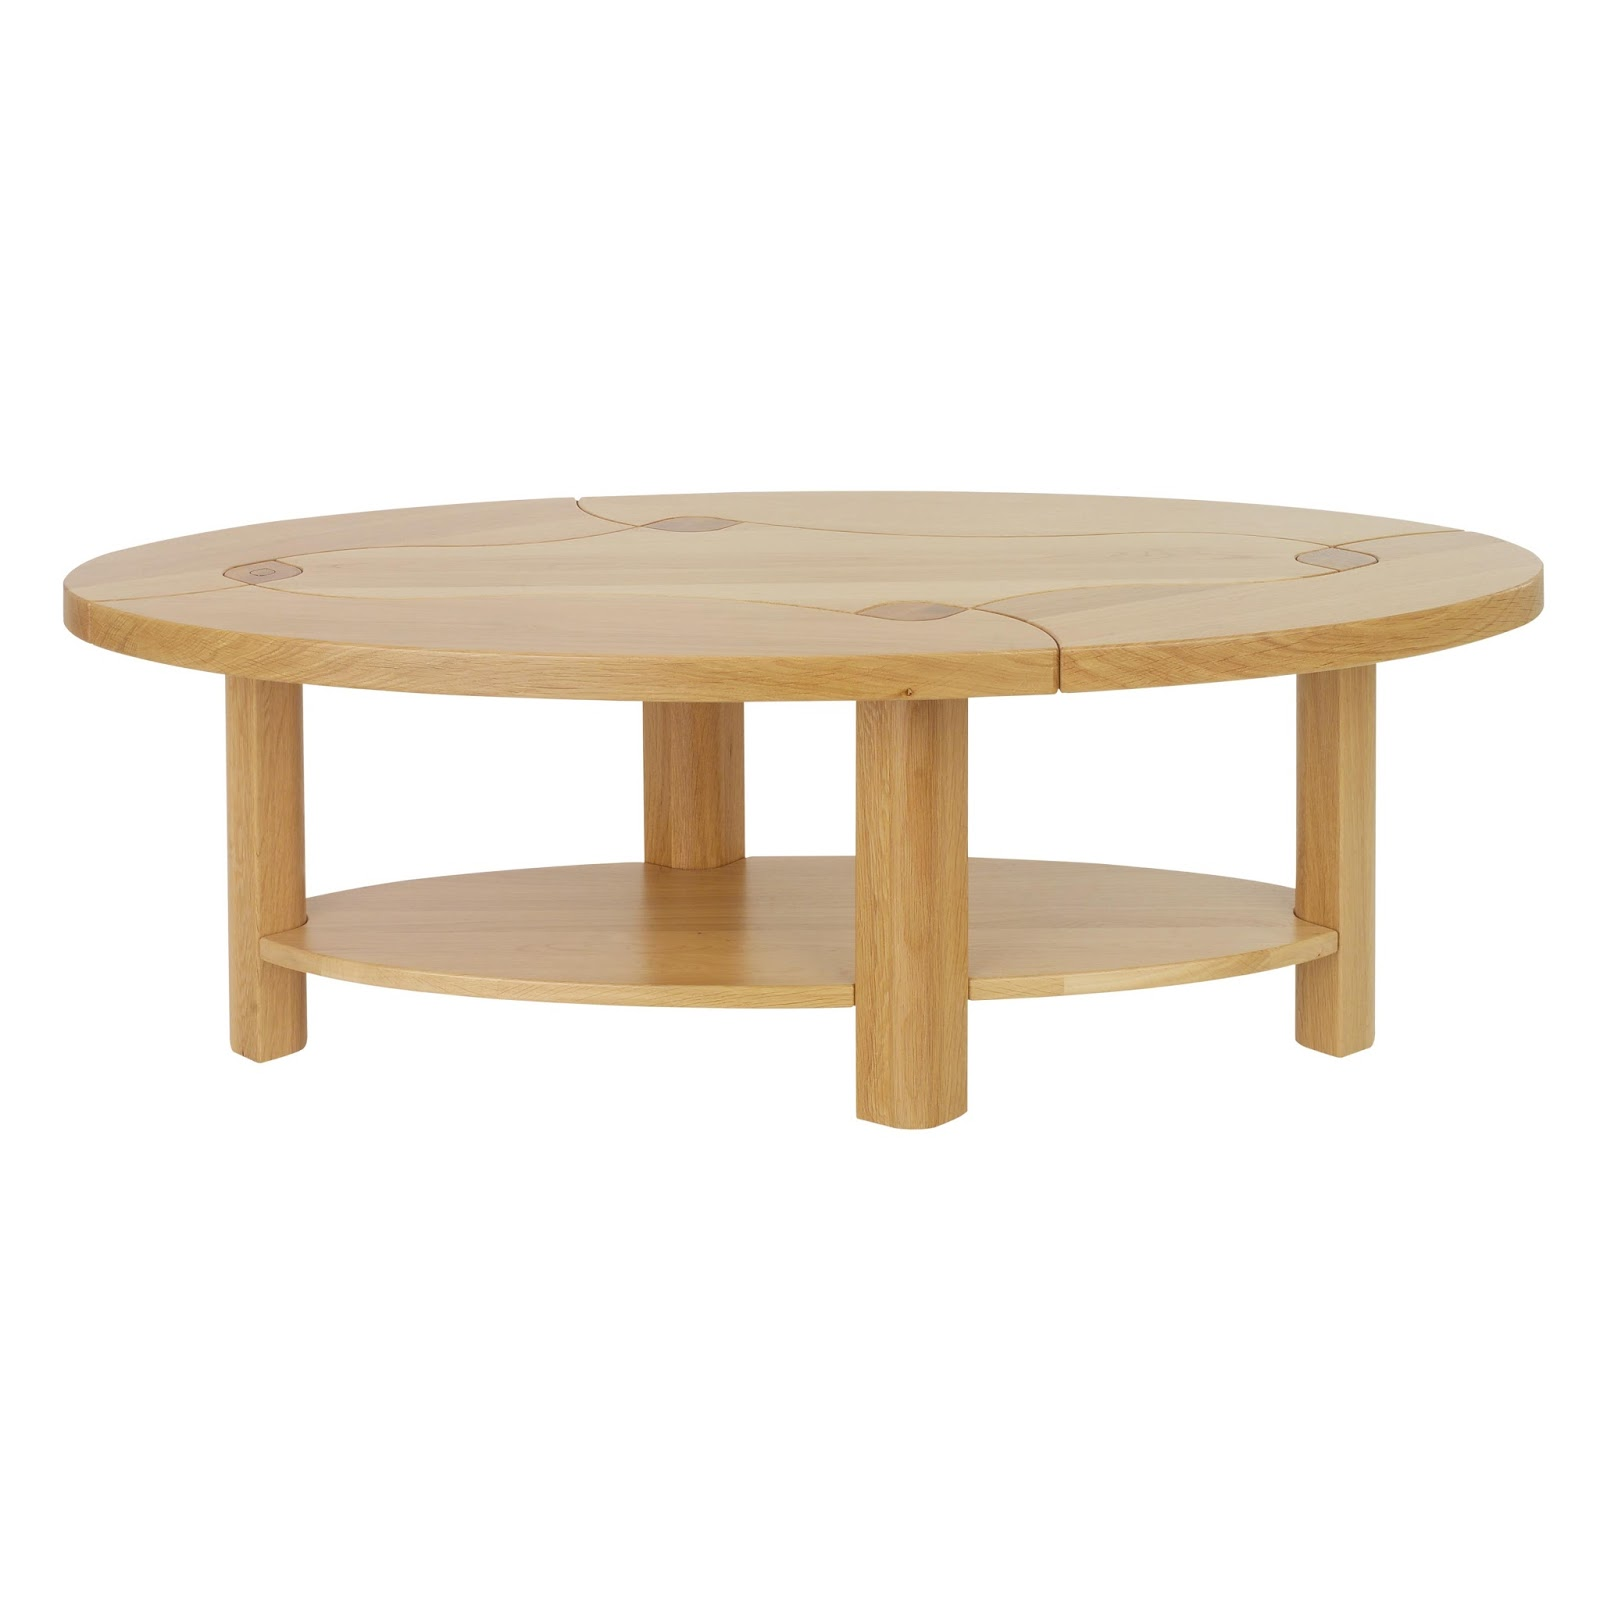 Coffee Table W Edge Table Natural Oak With Rustic Oak Dining Table